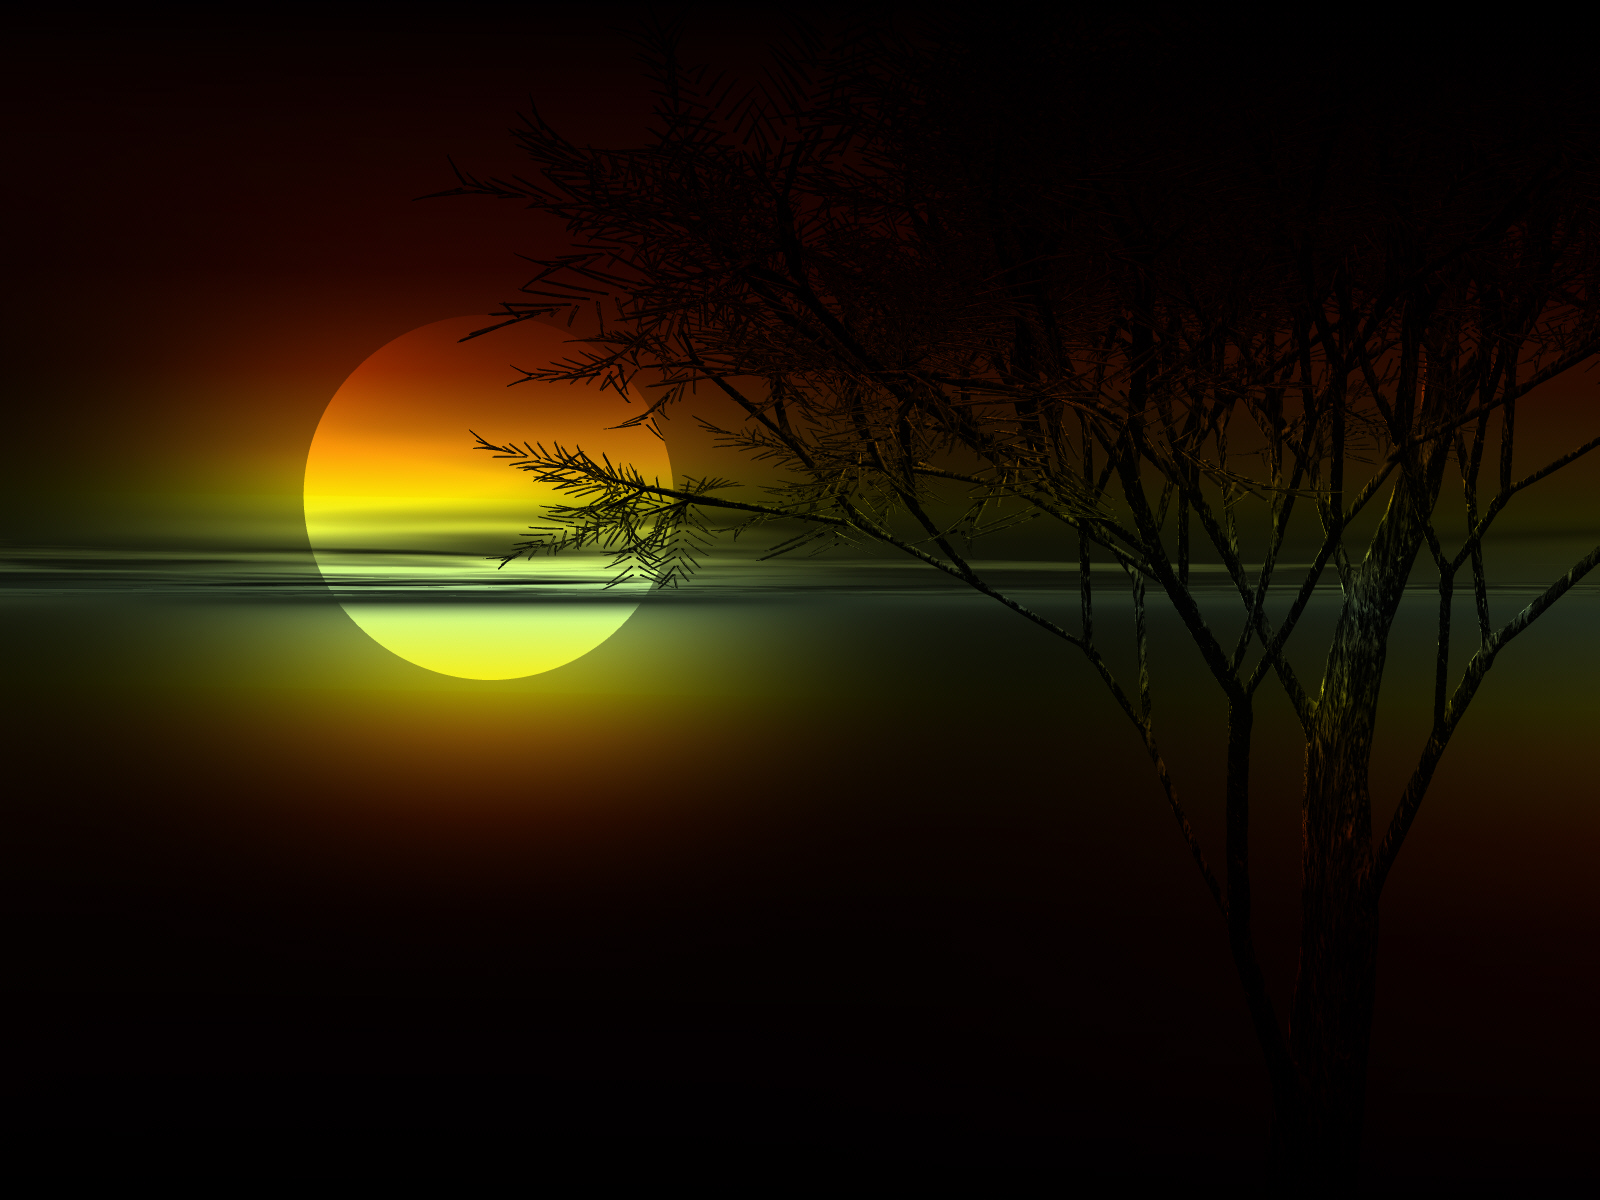 Artistic - Sunset  Wallpaper